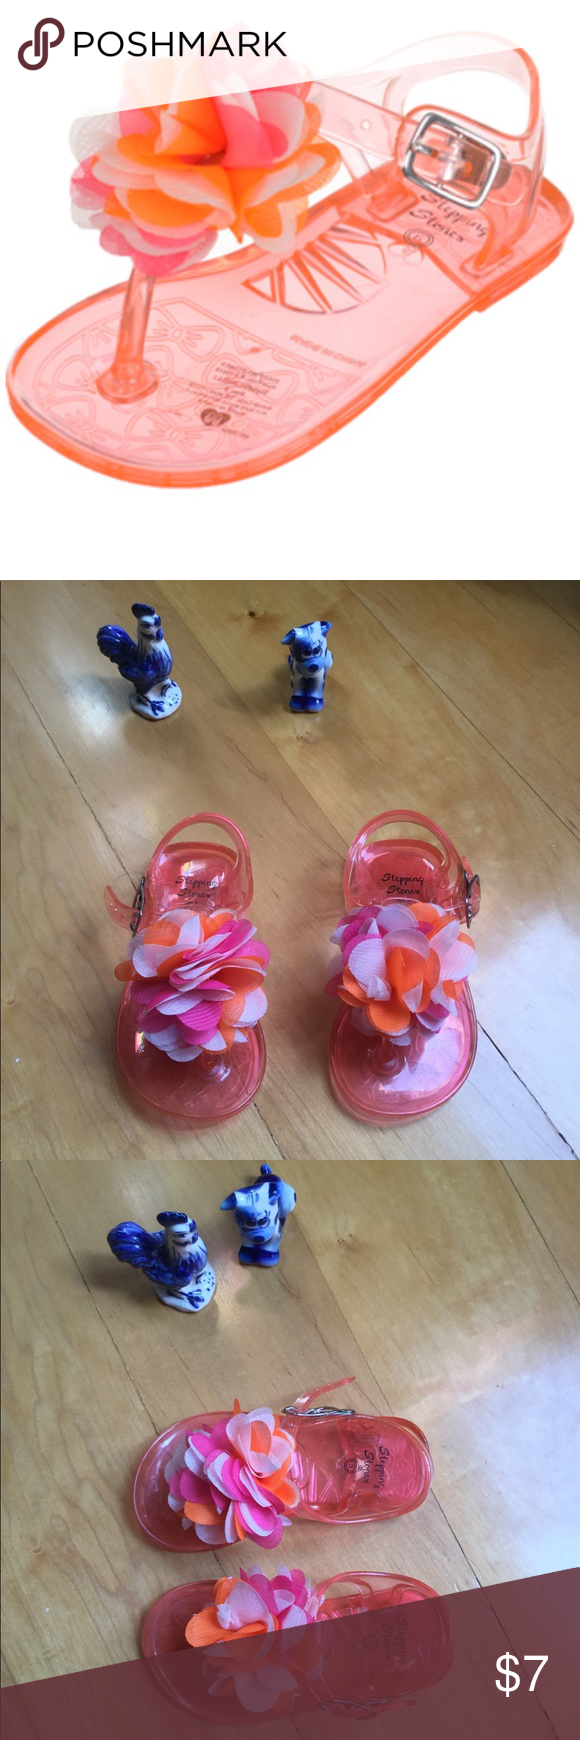 fdba5a5d03e 🌸Cute baby girl jelly sandals 🌸 Baby girl size 5 jelly sandals. Worn  several times and flowers 🌺 are in excellent